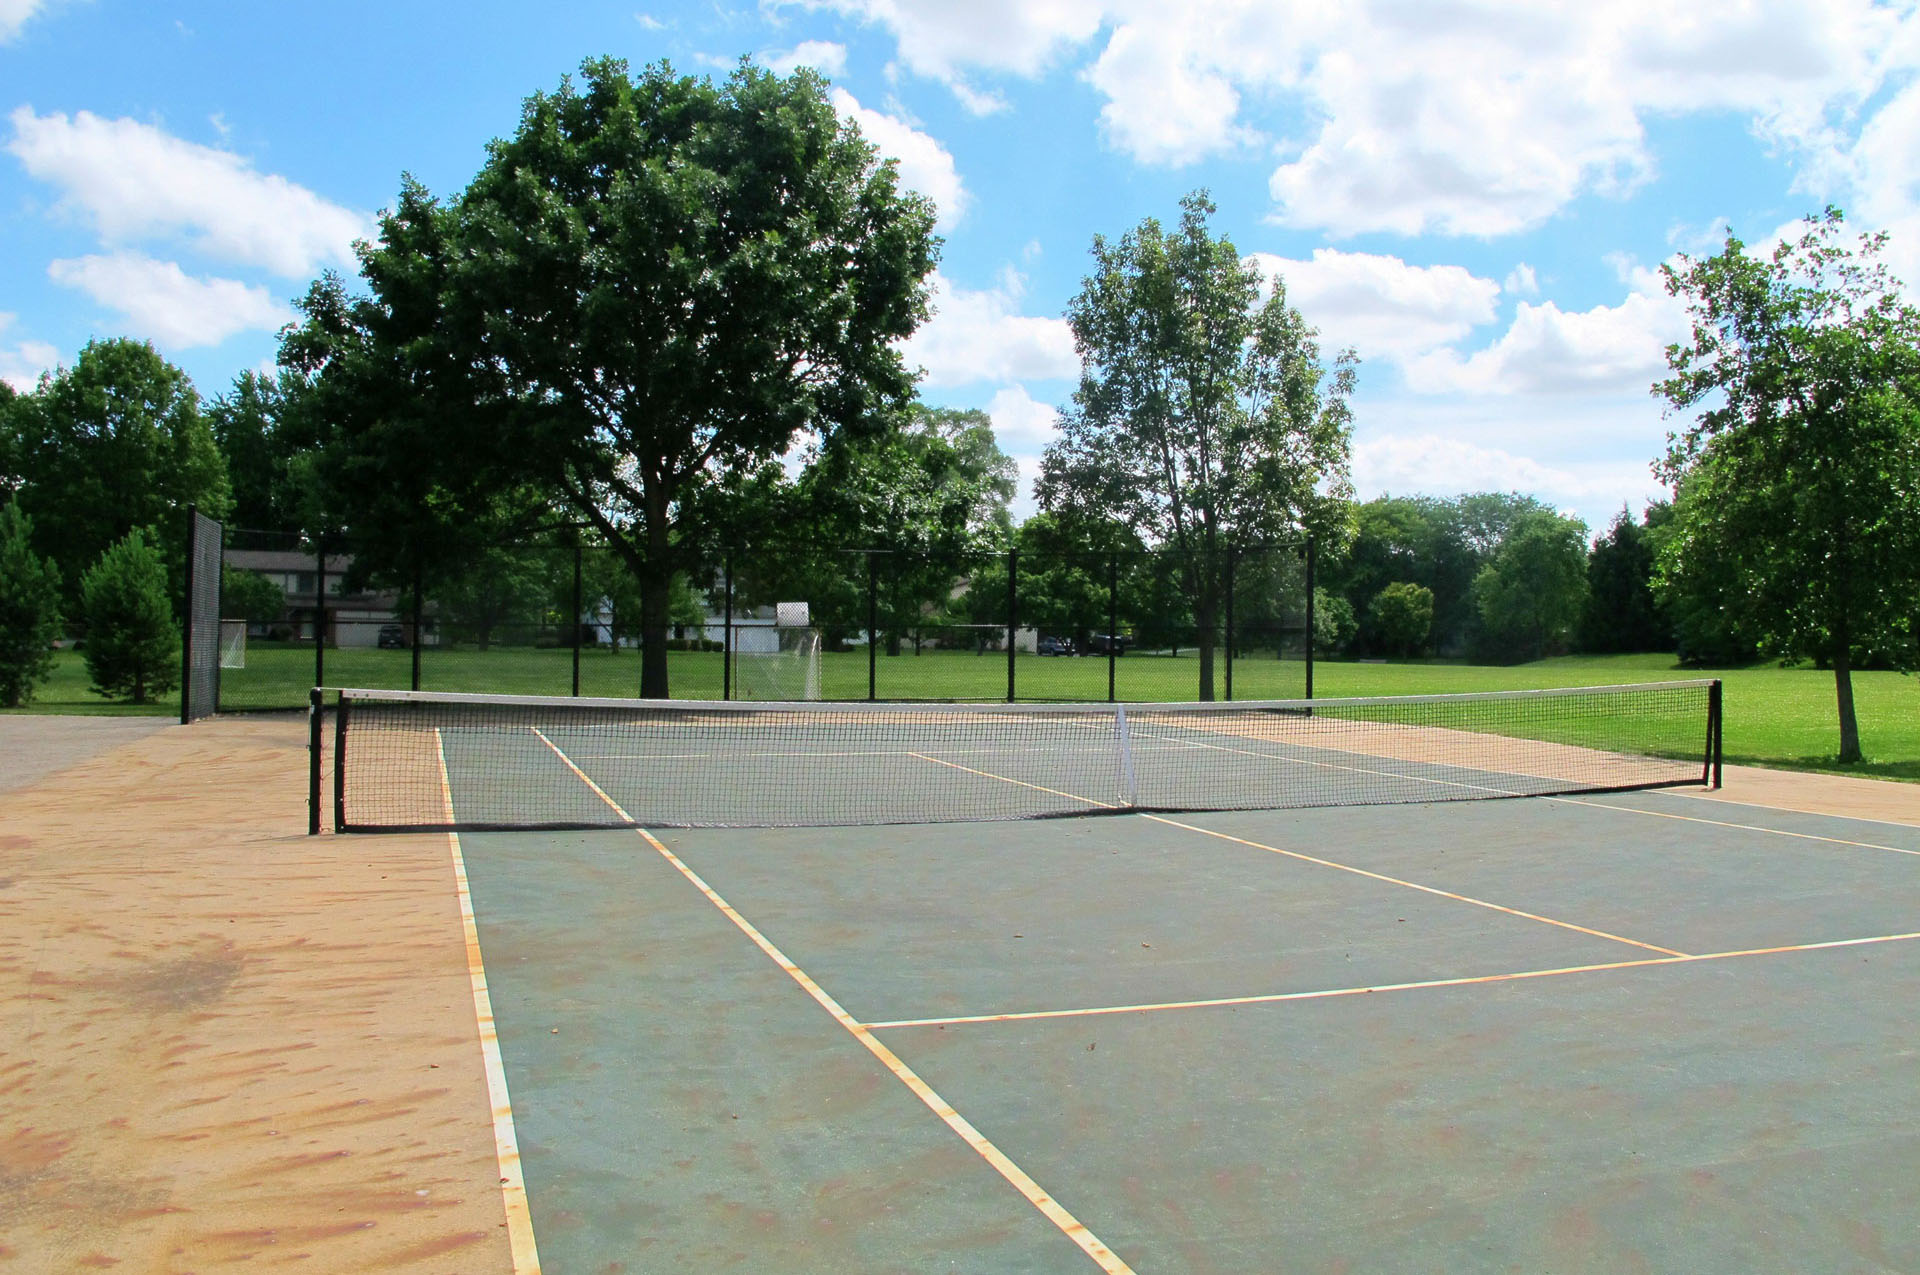 Sunny 95 Tennis Courts